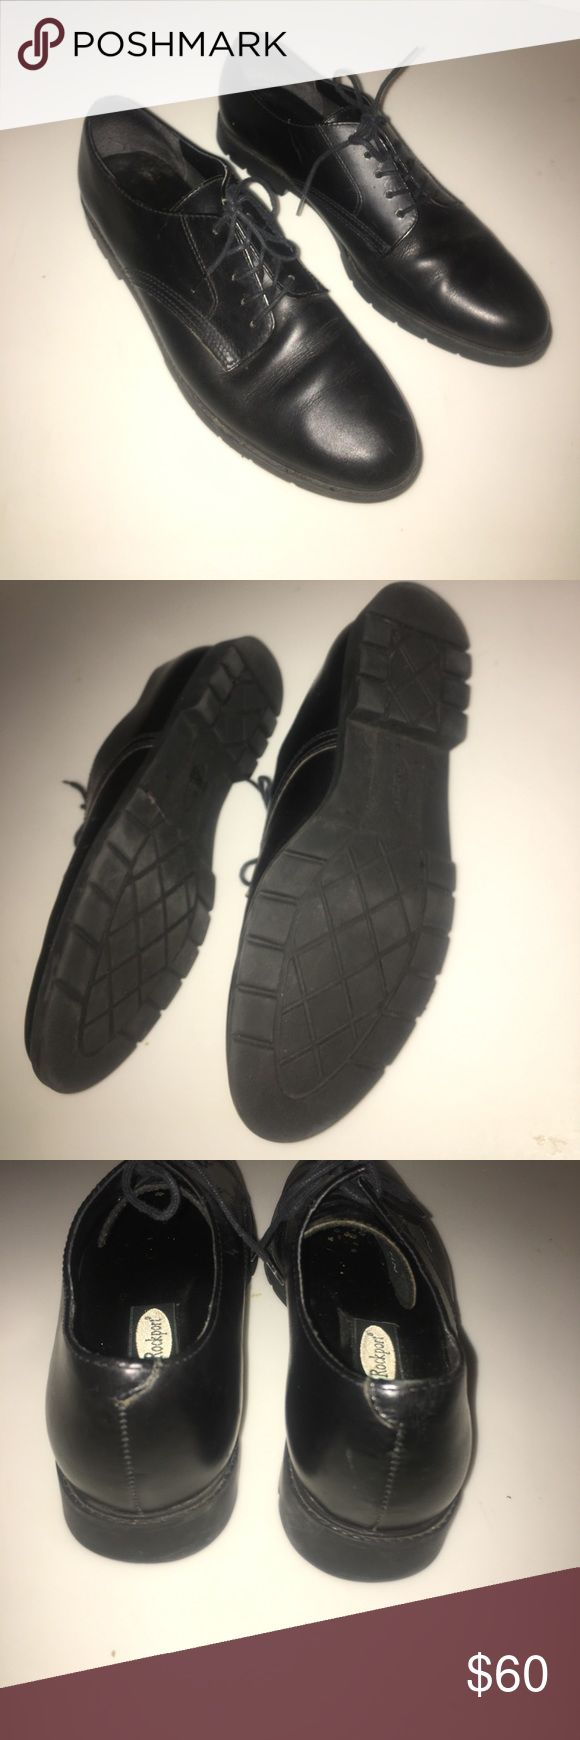 BLACK LEATHER ROCKPORT SHOES Worn once inside. No signs of wear! Comfortable. ROCKPORT. Tags- Steve Madden Jcrew Shoes Dress shoes Rockport Shoes Sneakers